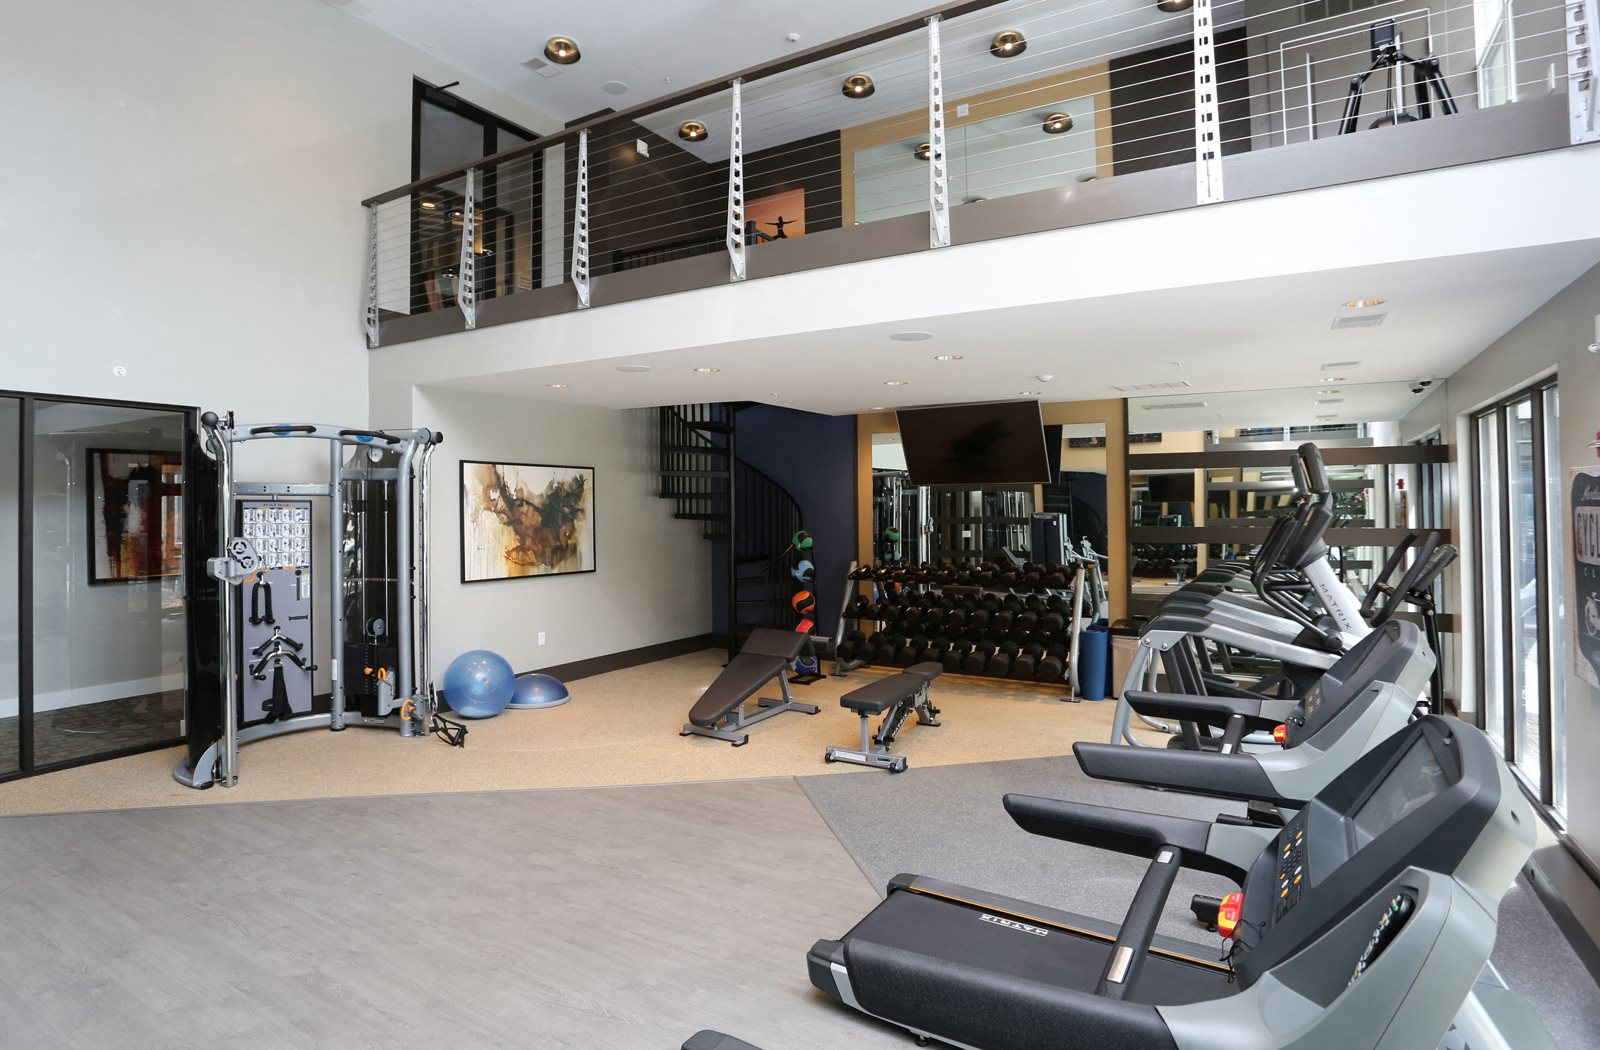 Luxury Apartments in Wauwatosa, WI - Mayfair Reserve Fitness Center